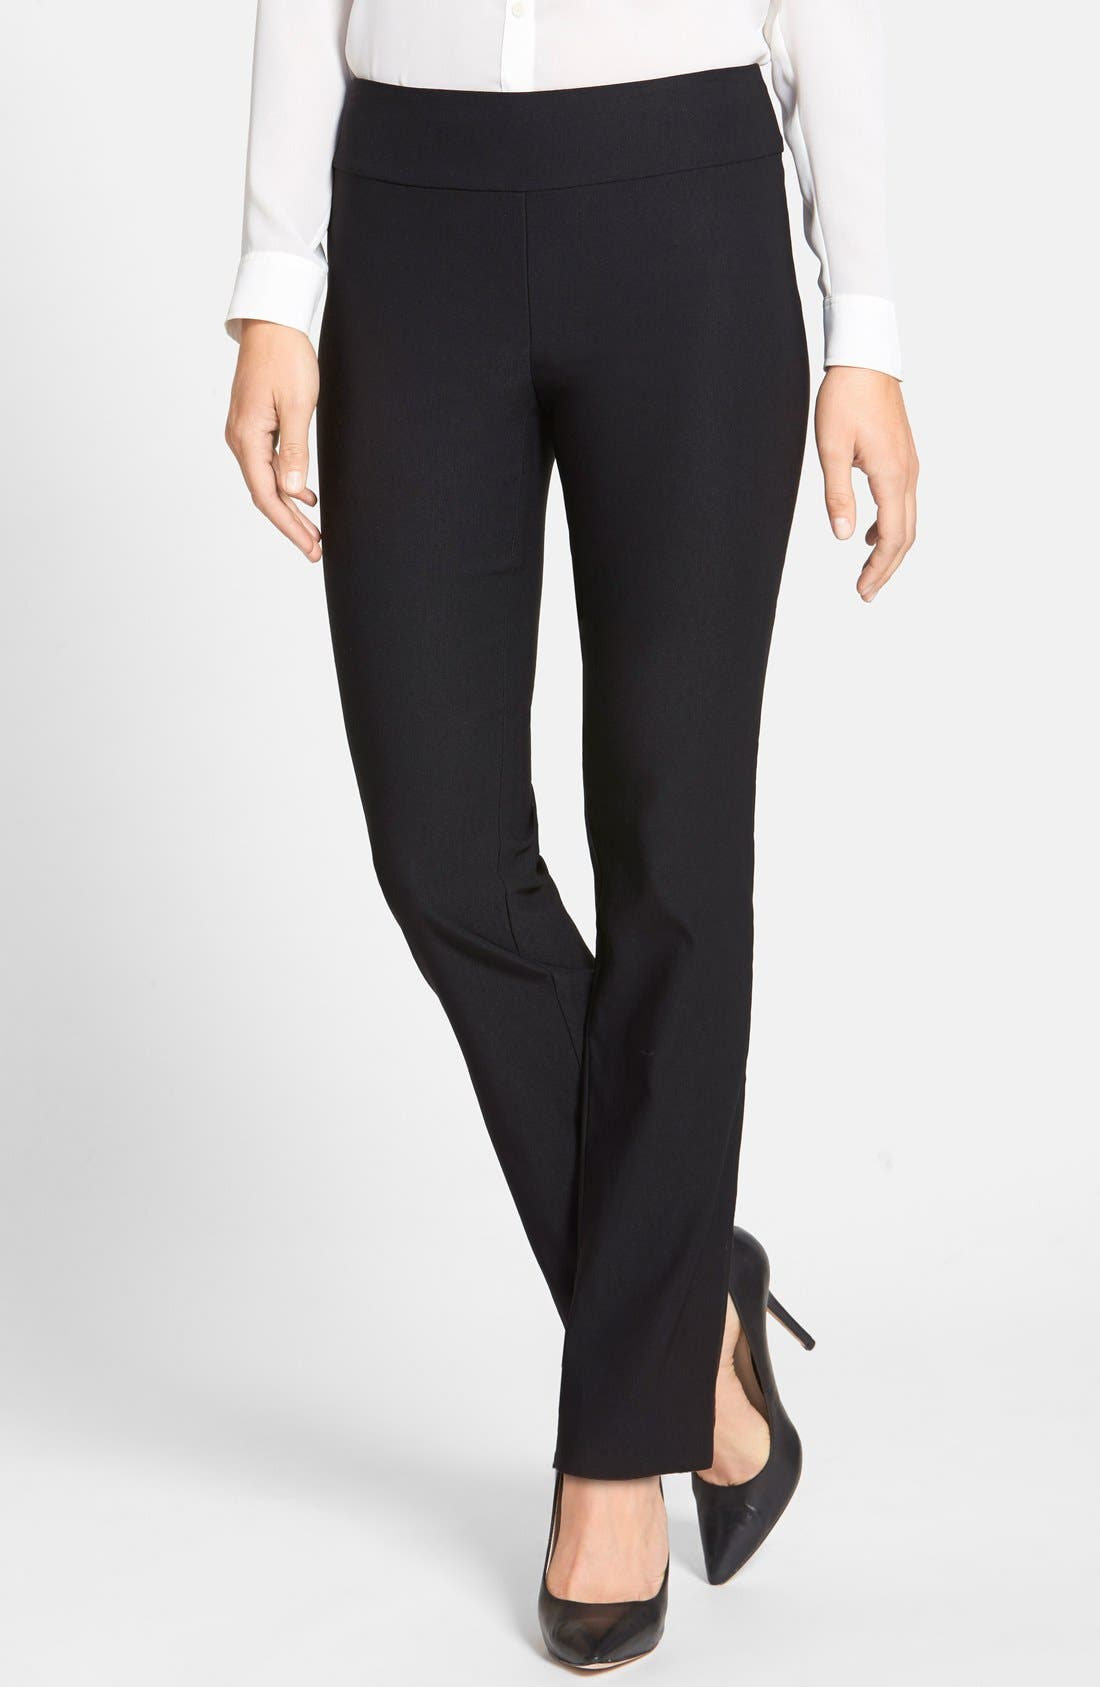 52ddeed100aed Women's Work Clothing | Nordstrom